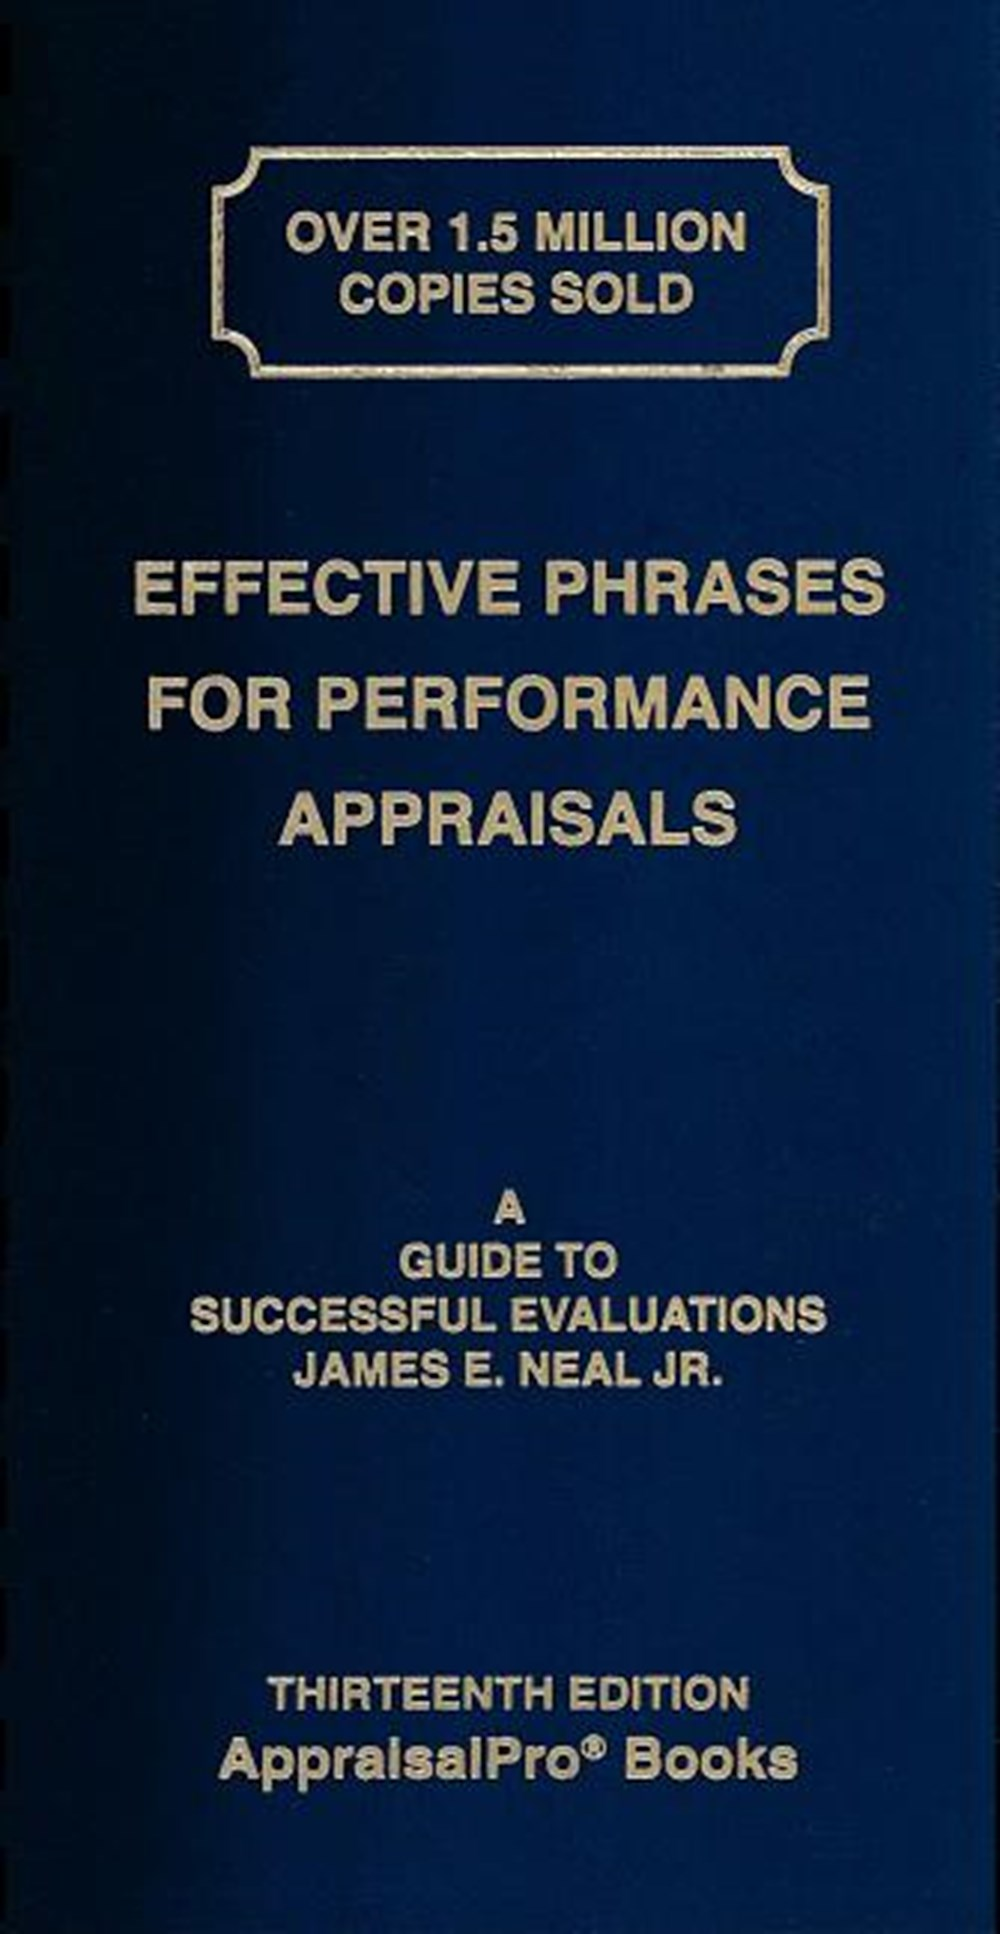 Effective Phrases for Performance Appraisals A Guide to Successful Evaluations